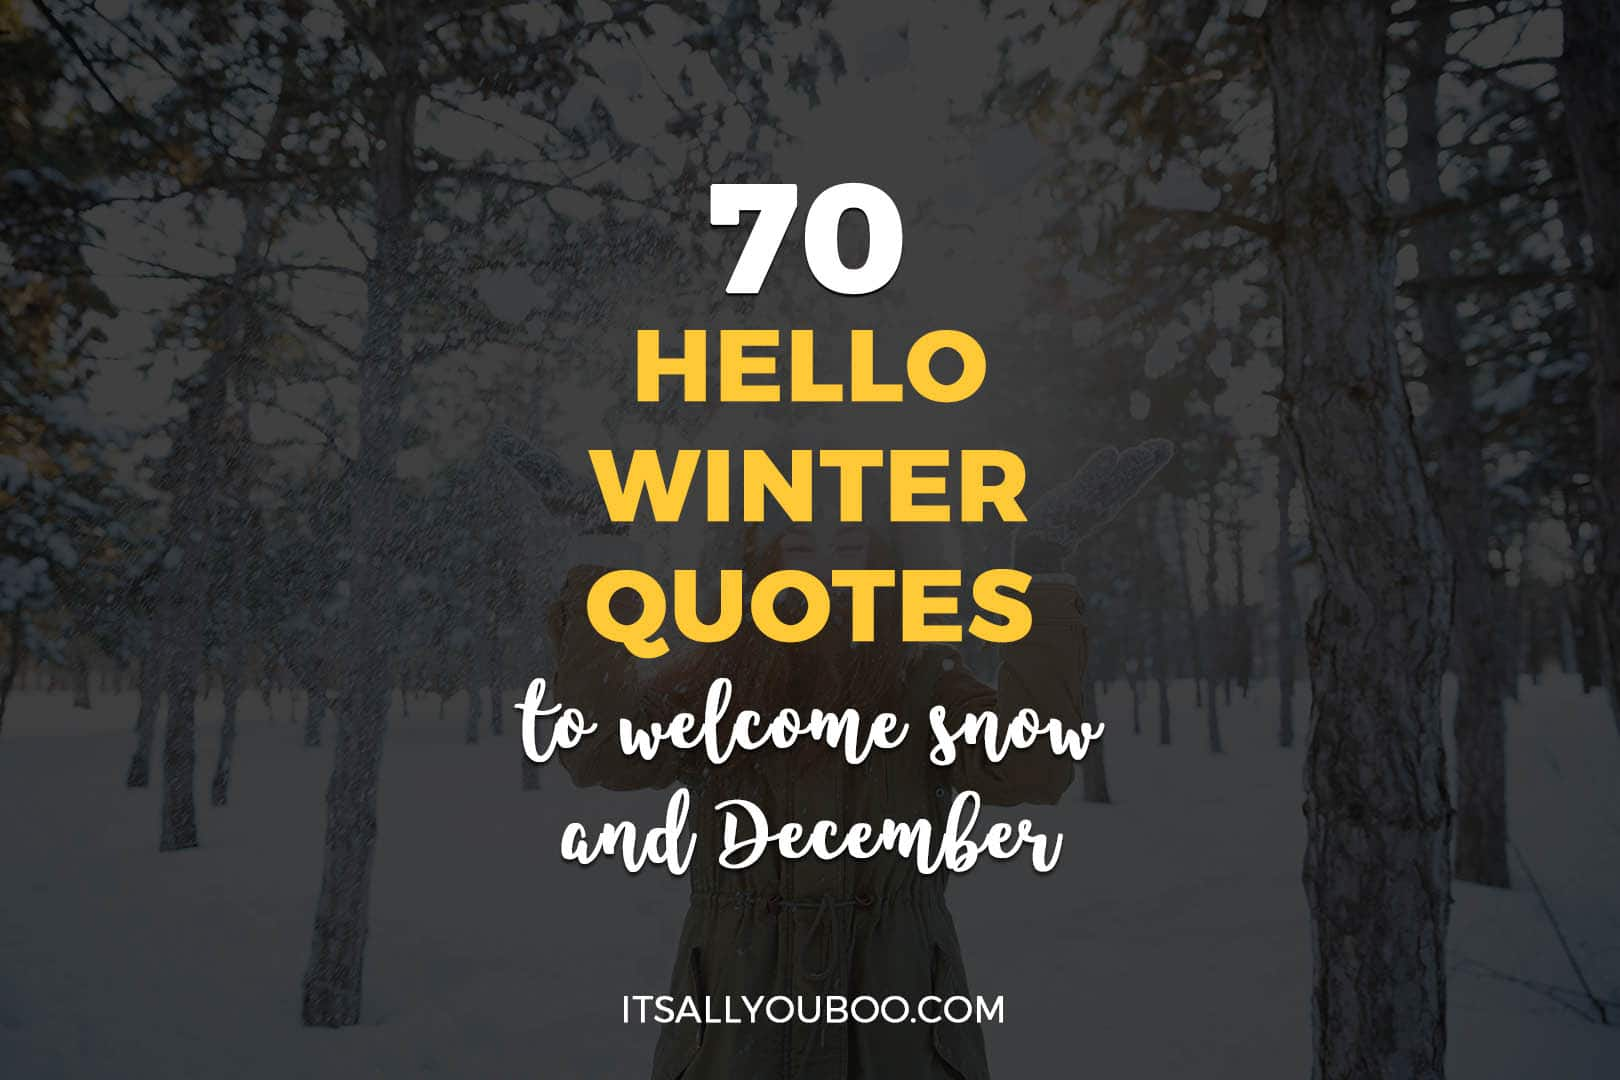 70 Hello Winter Quotes to Welcome December and Snow